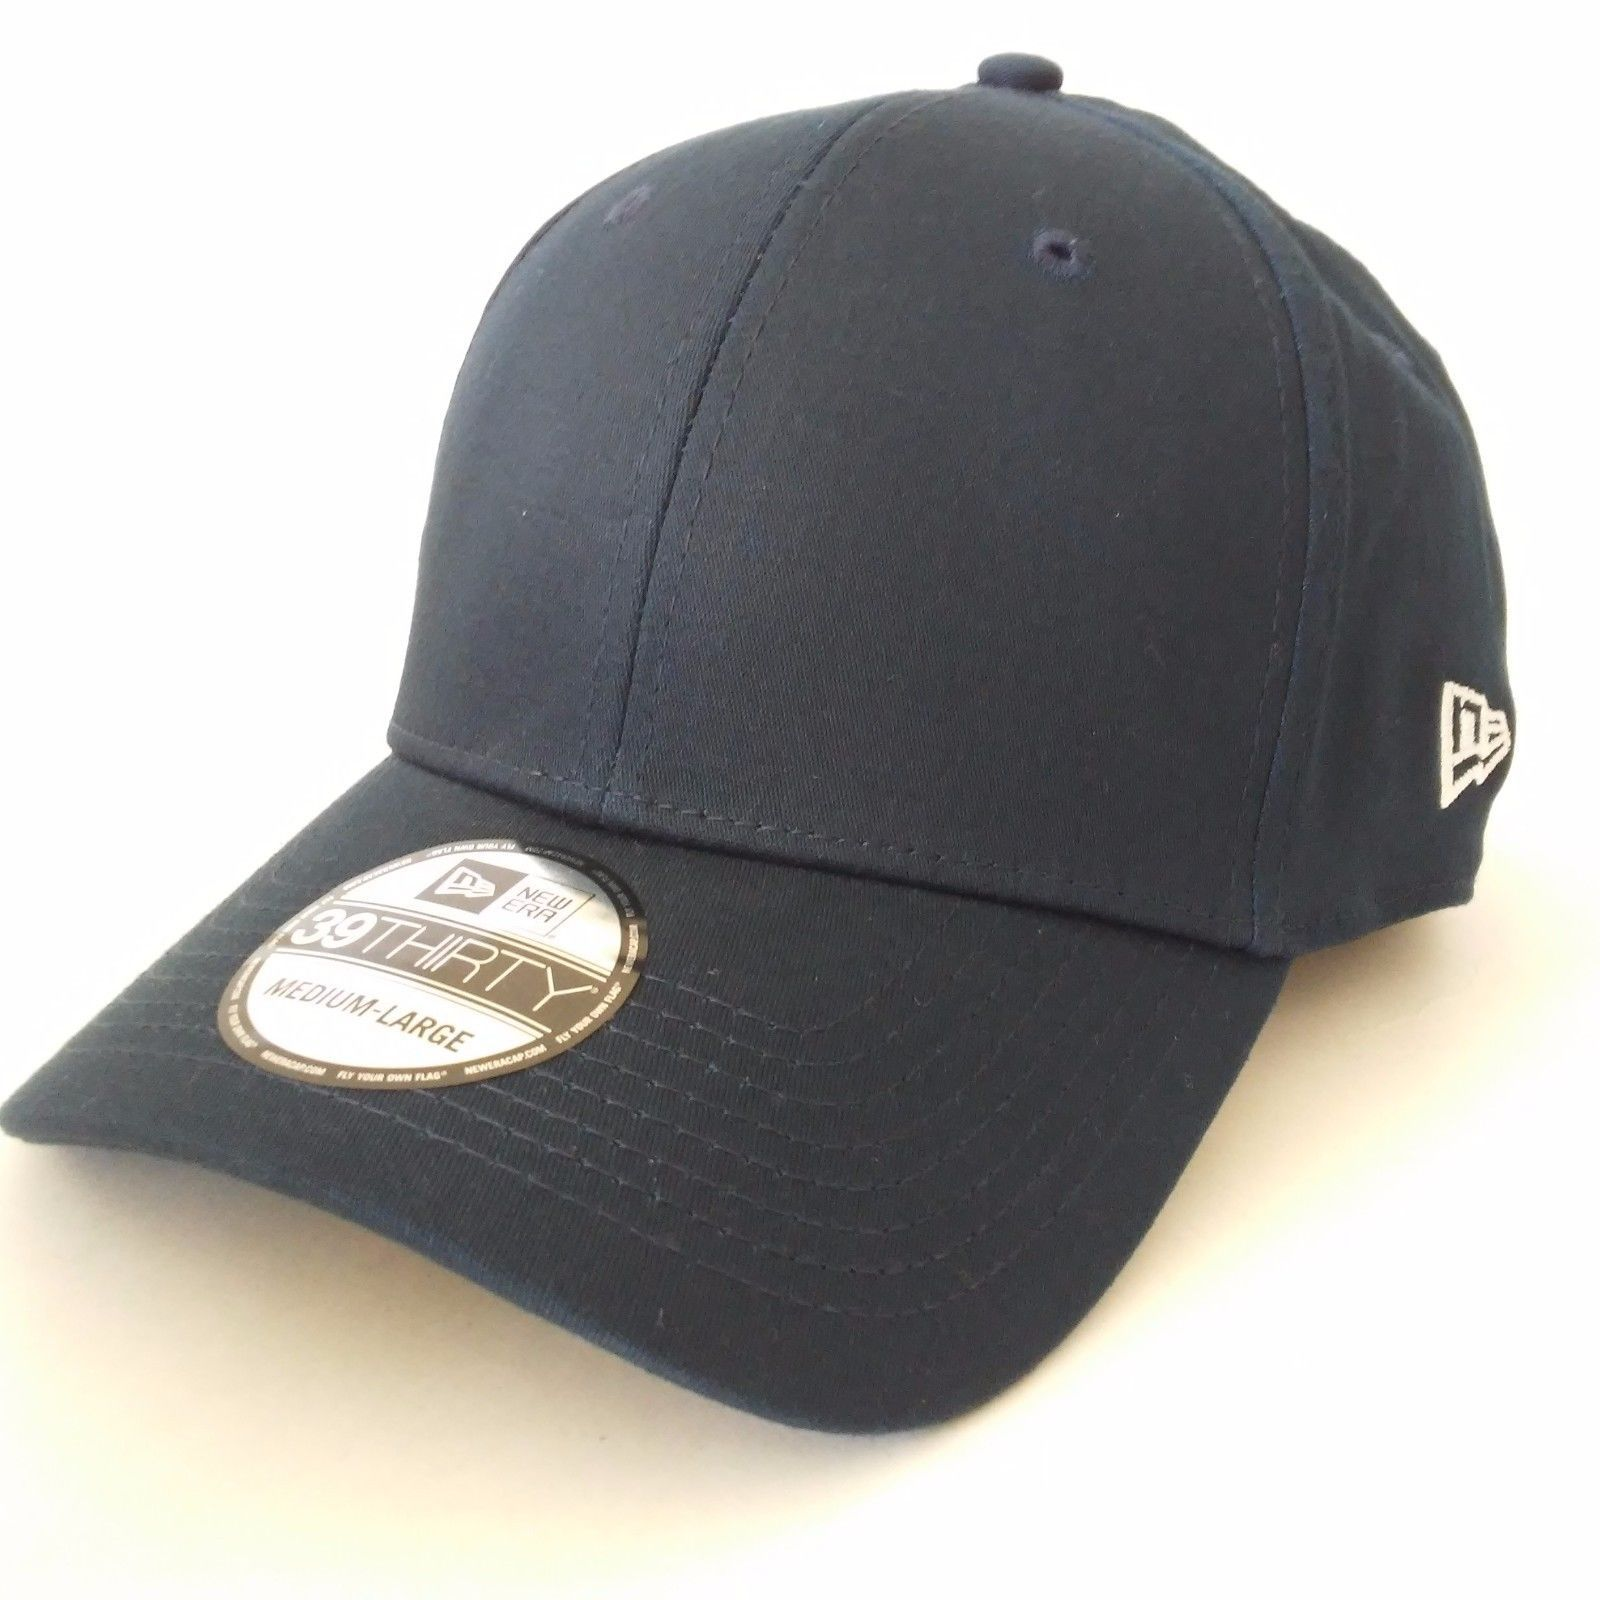 size 40 59509 ecfcf New Era 39Thirty Blank Stretch Cotton fitted Navy blue Hat Cap WITH LOGO